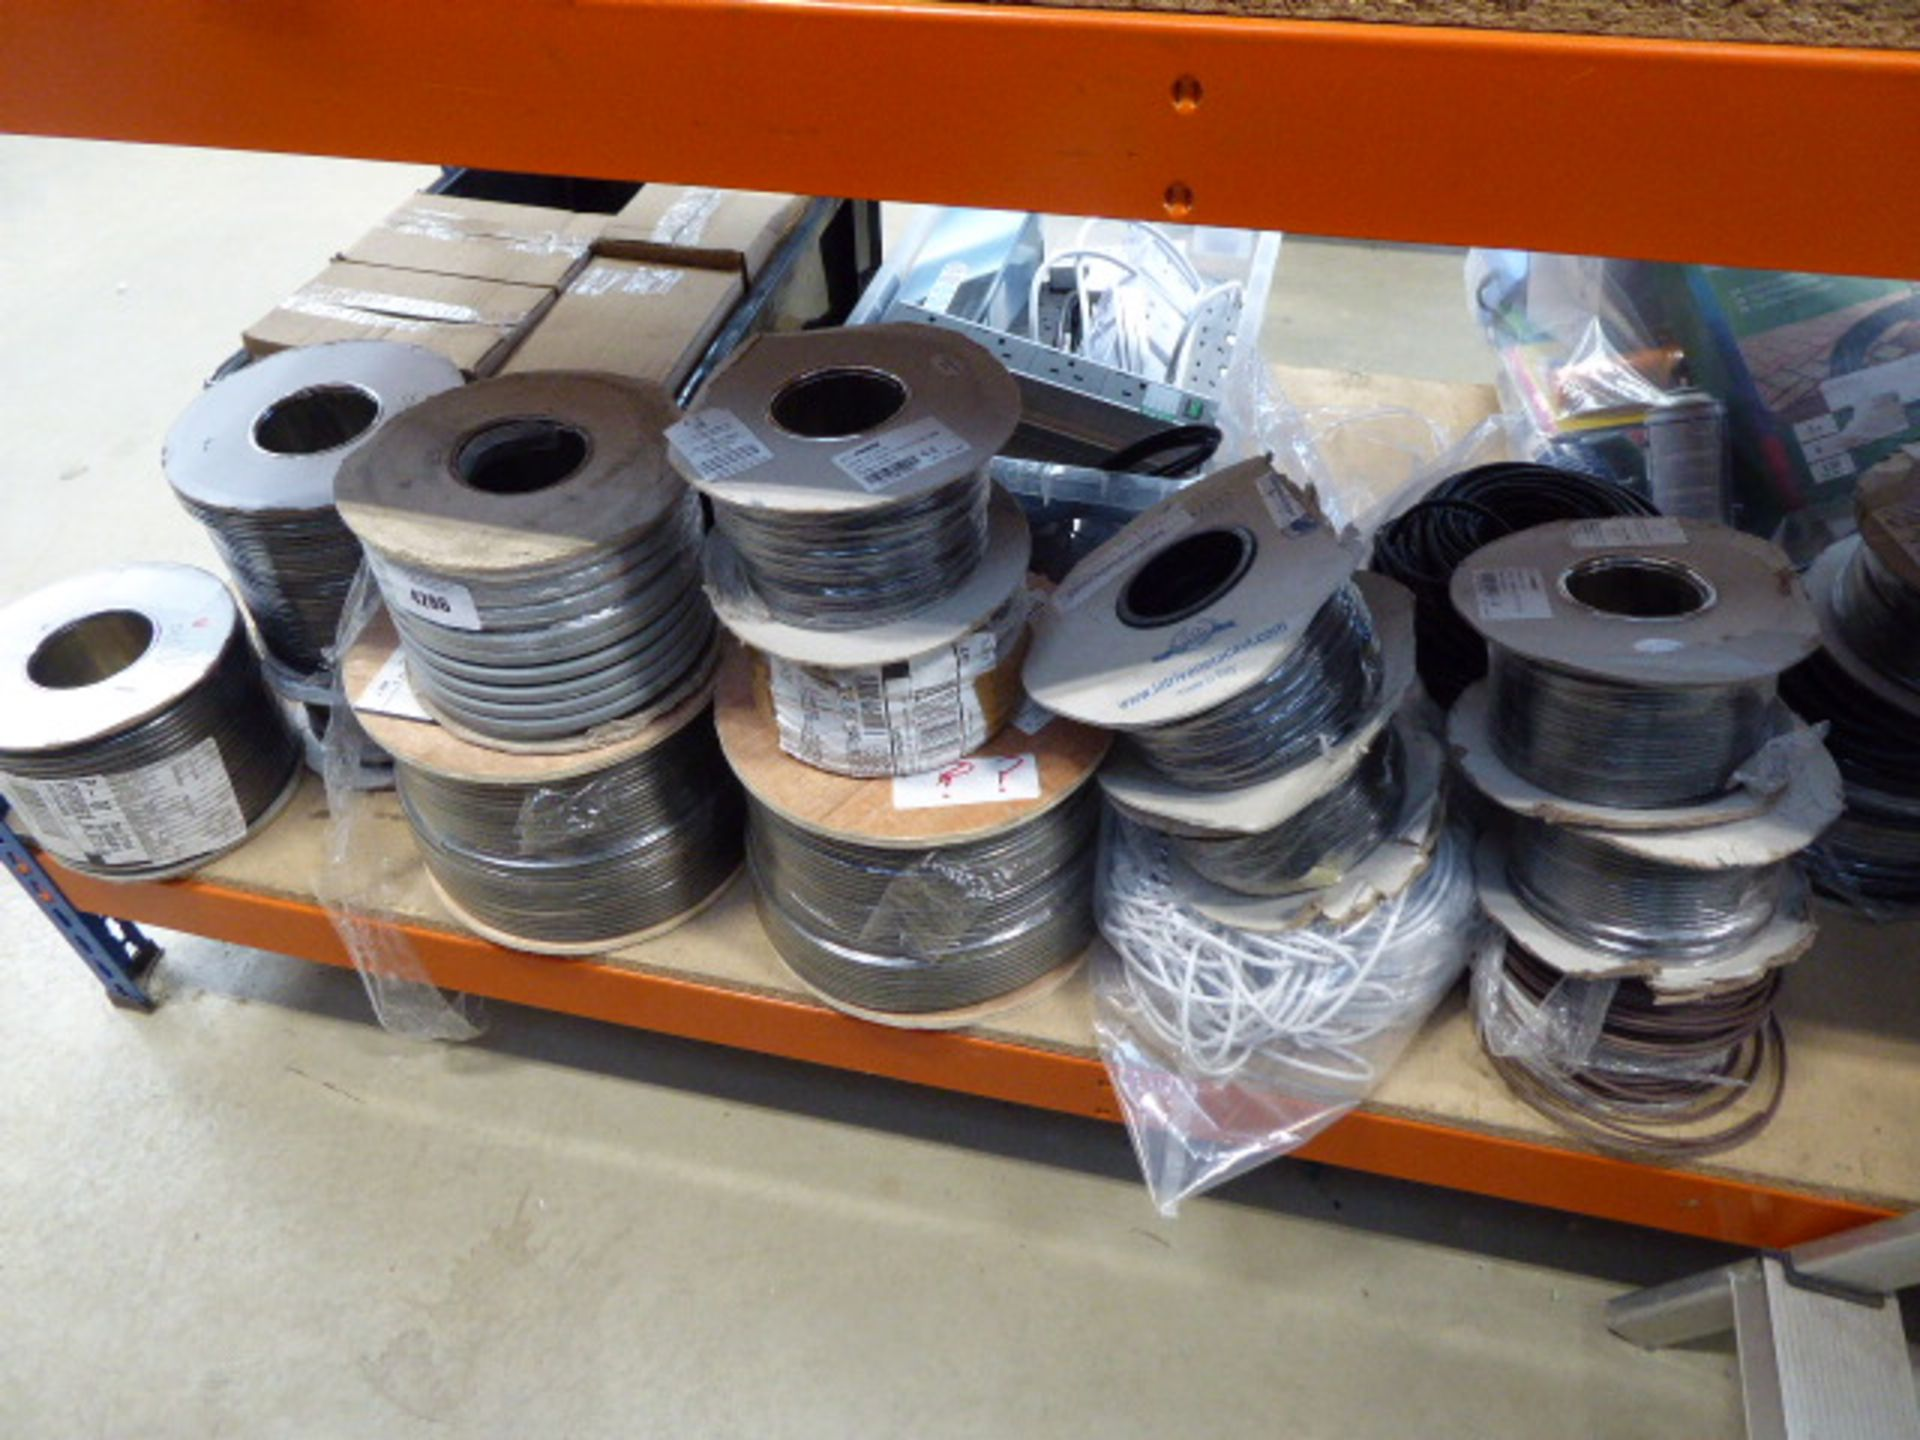 Large underbay of approx 19 rolls of assorted cable